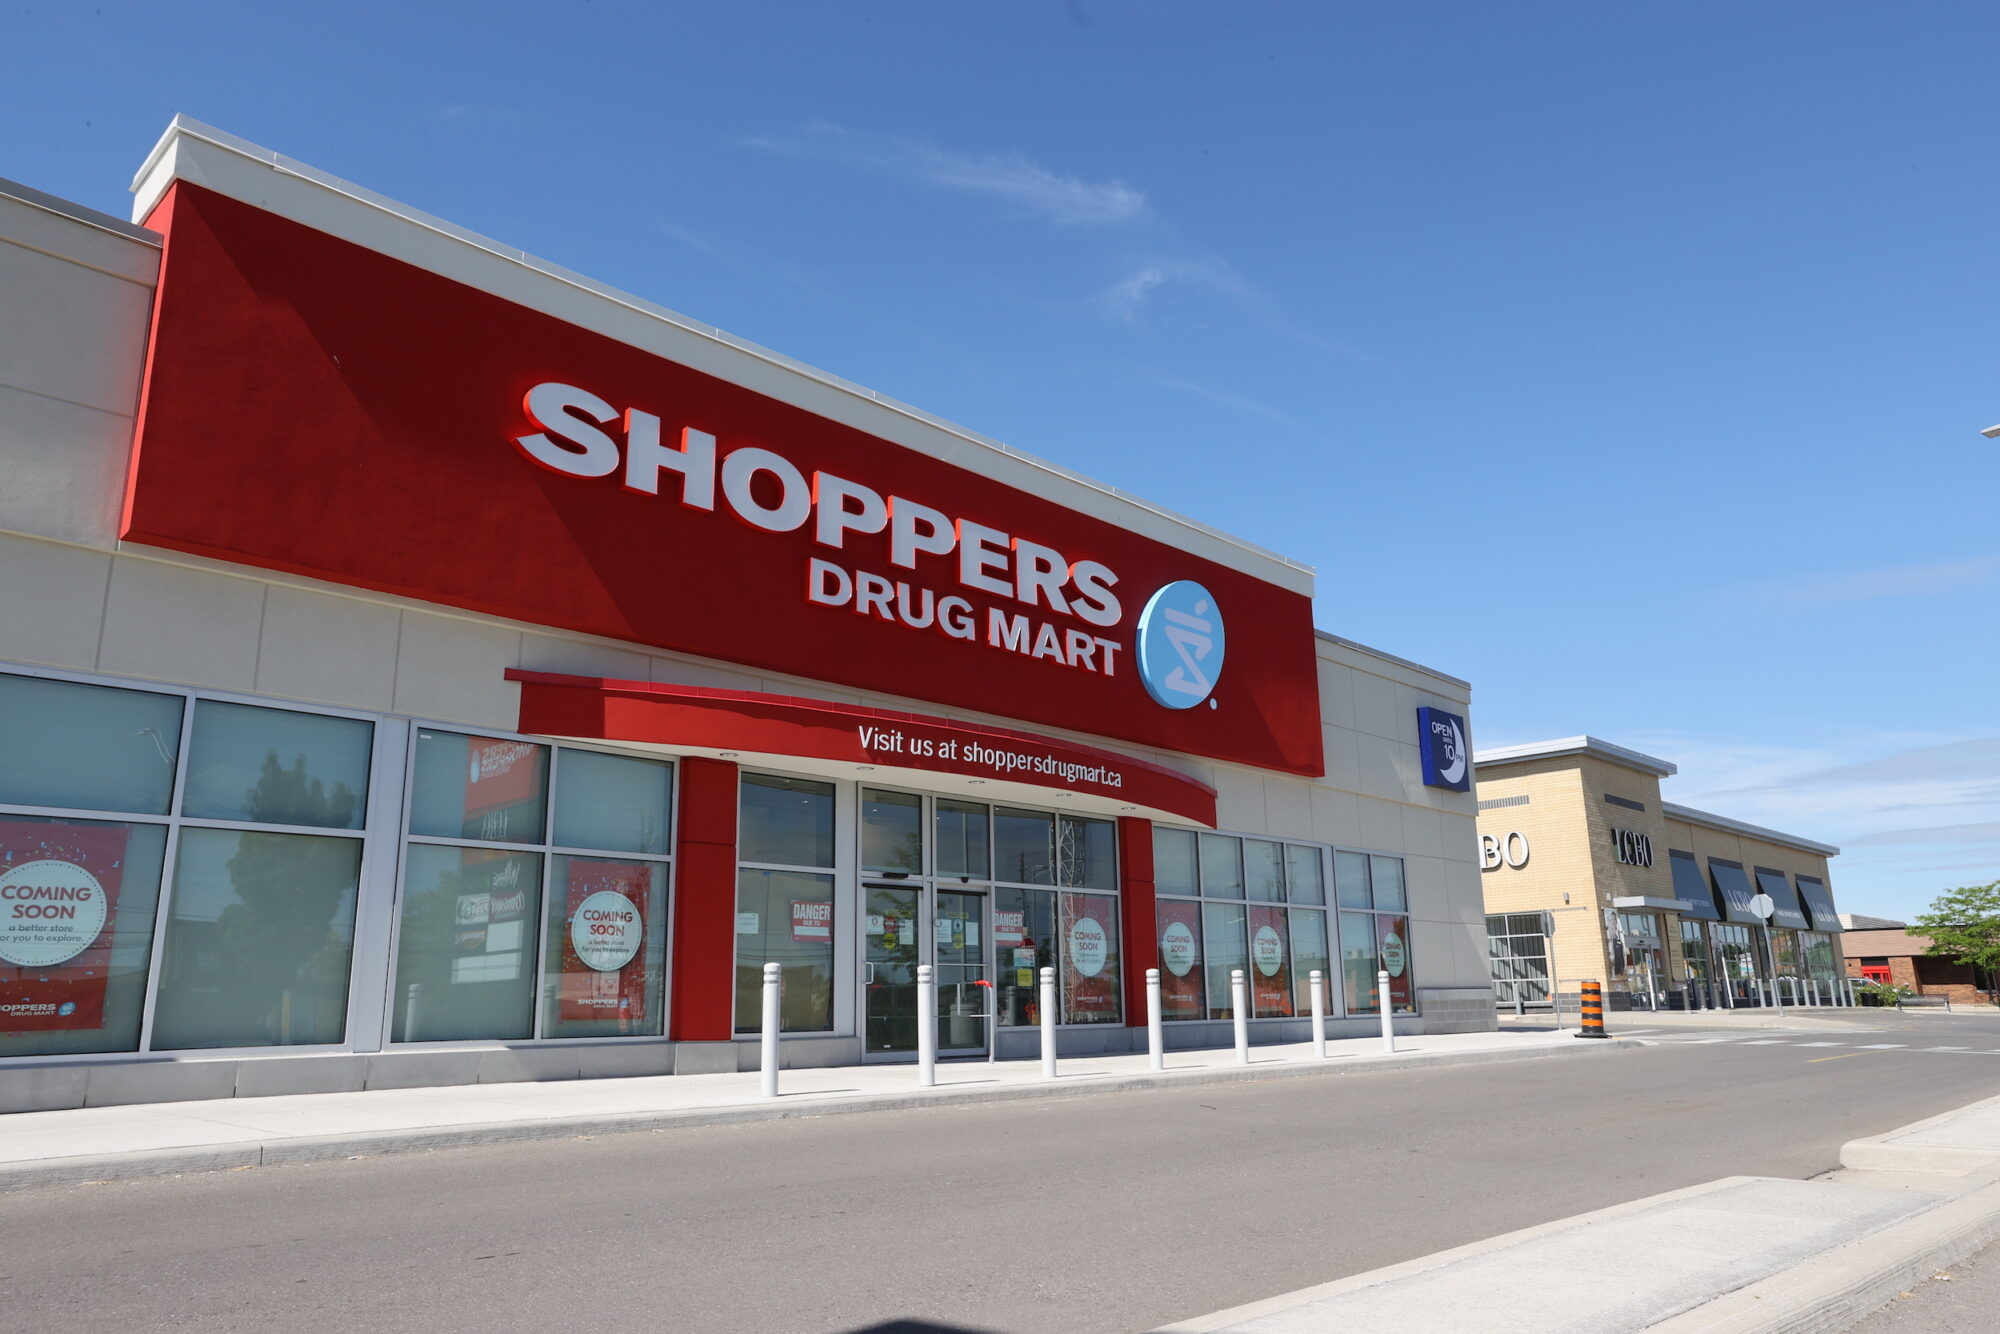 Exterior view of Shoppers Drug Mark